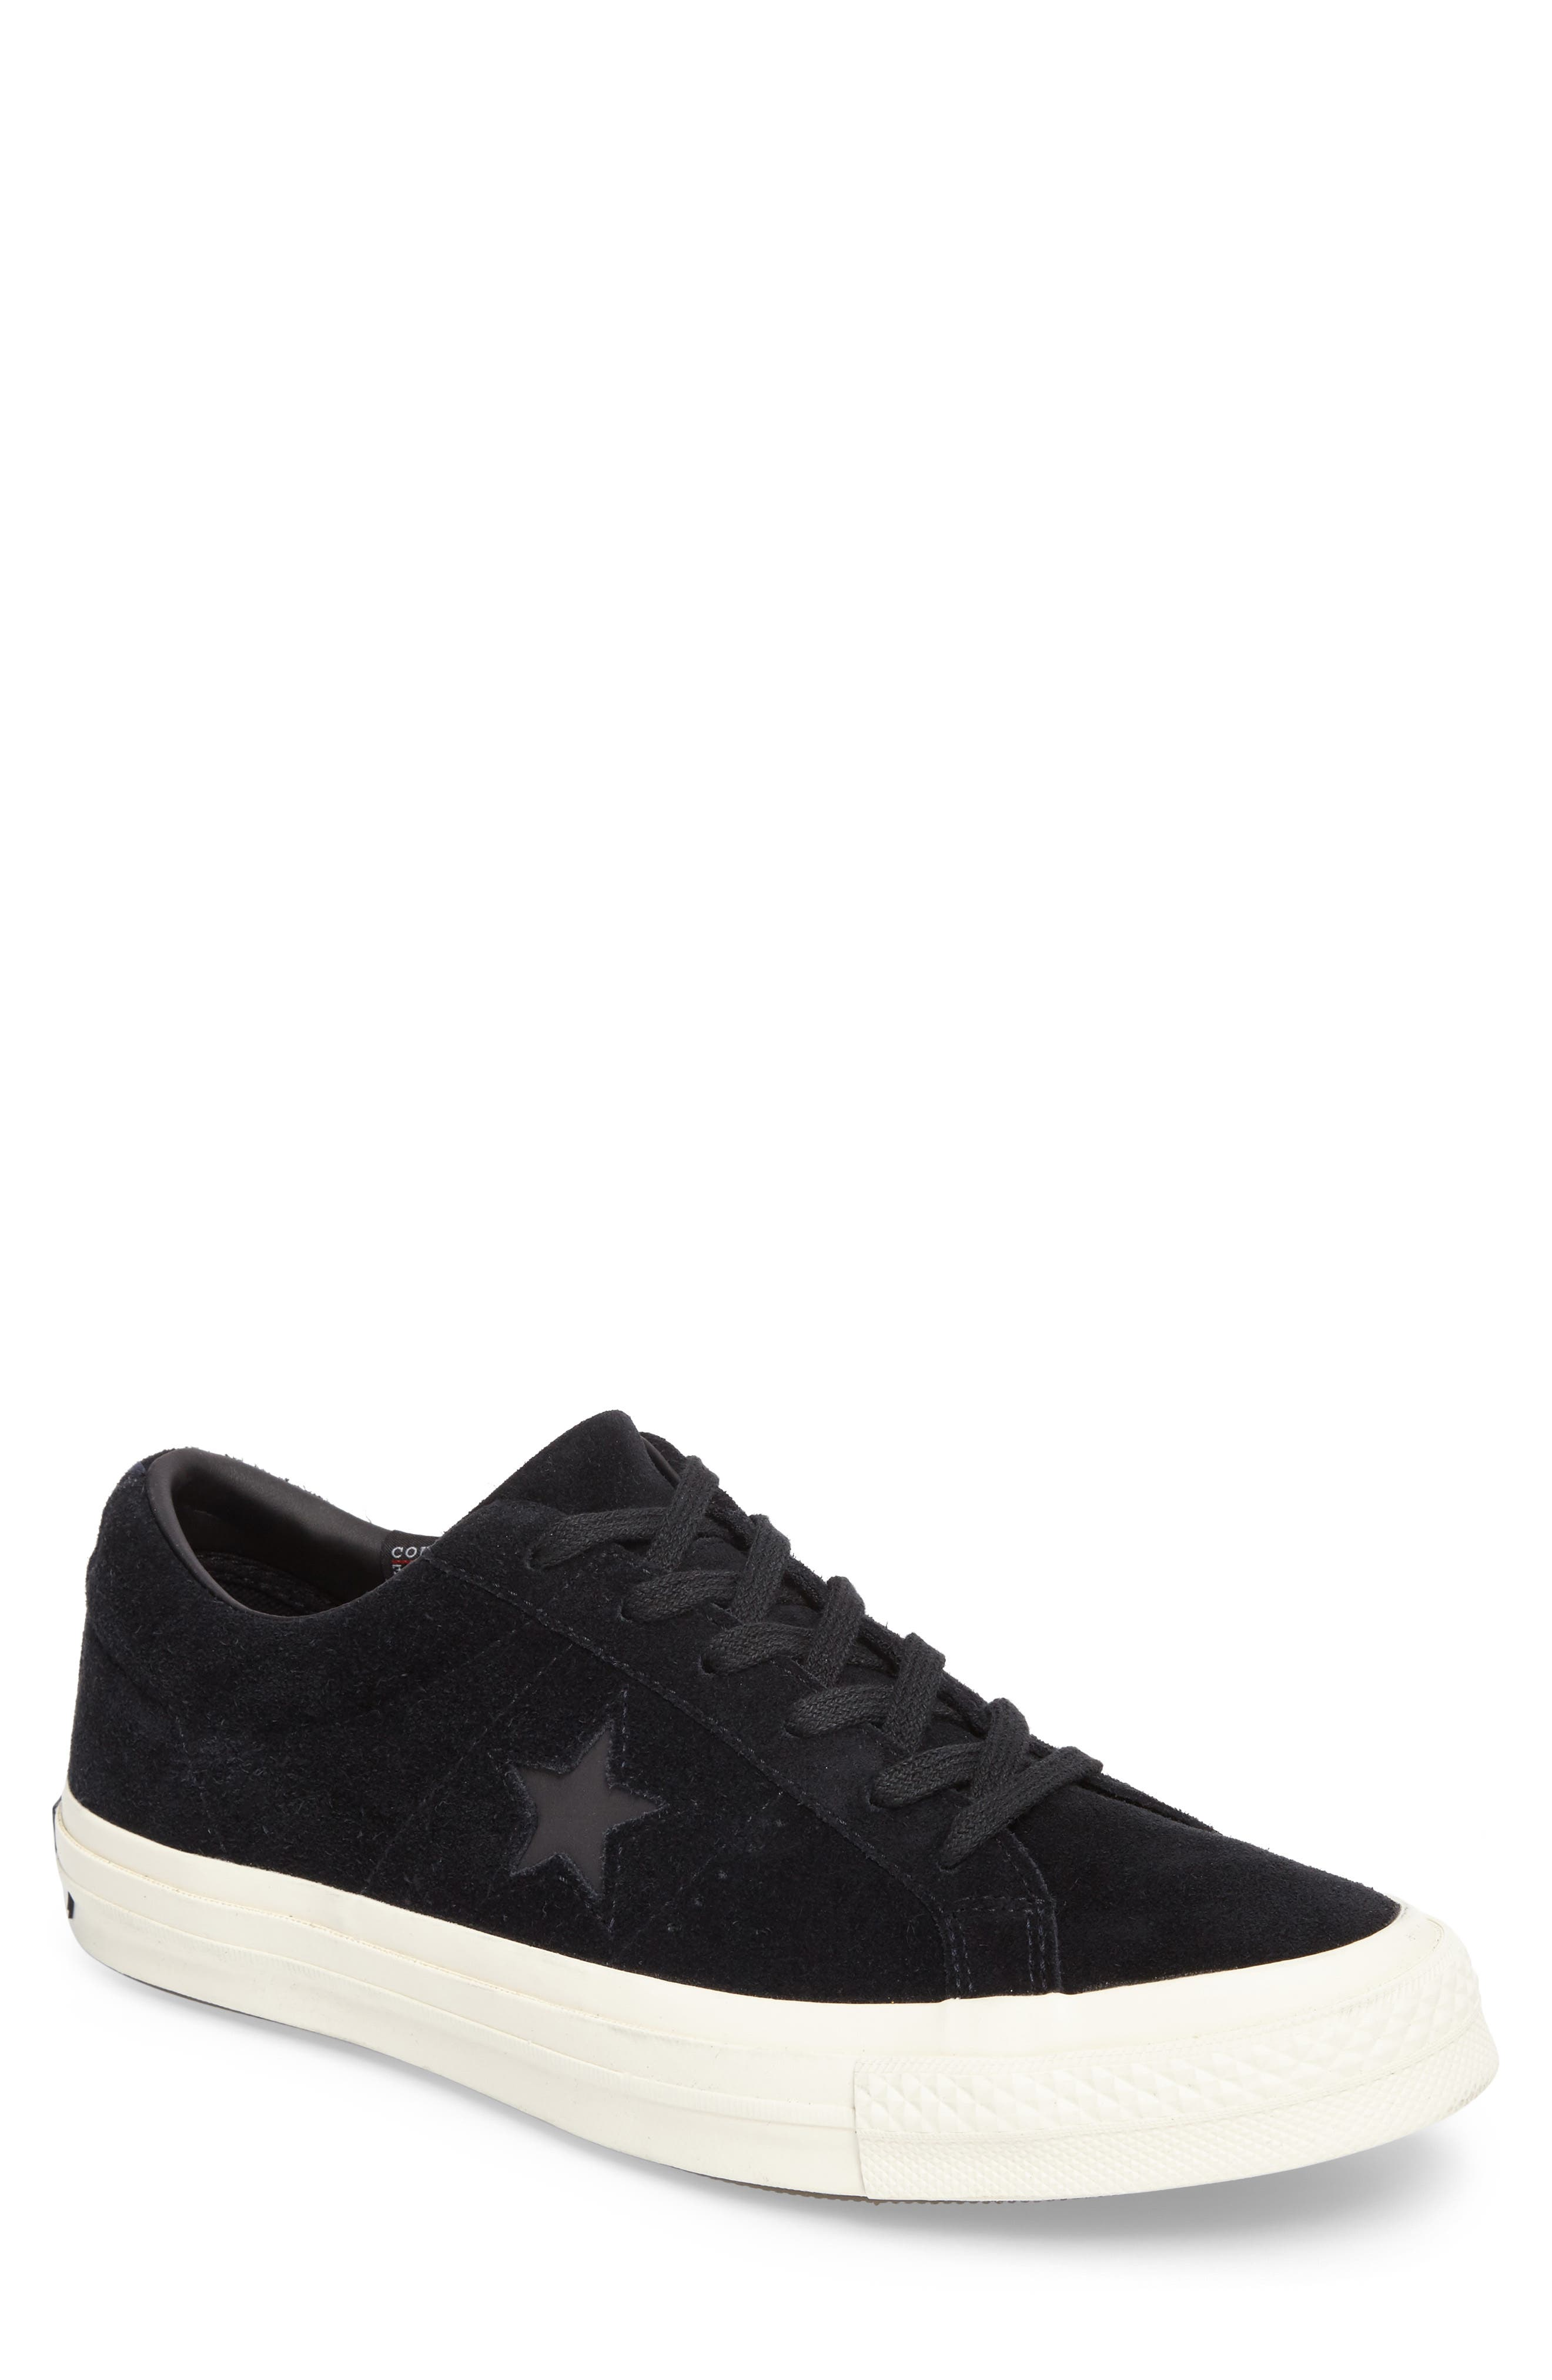 CONVERSE,                             One Star Sneaker,                             Main thumbnail 1, color,                             001